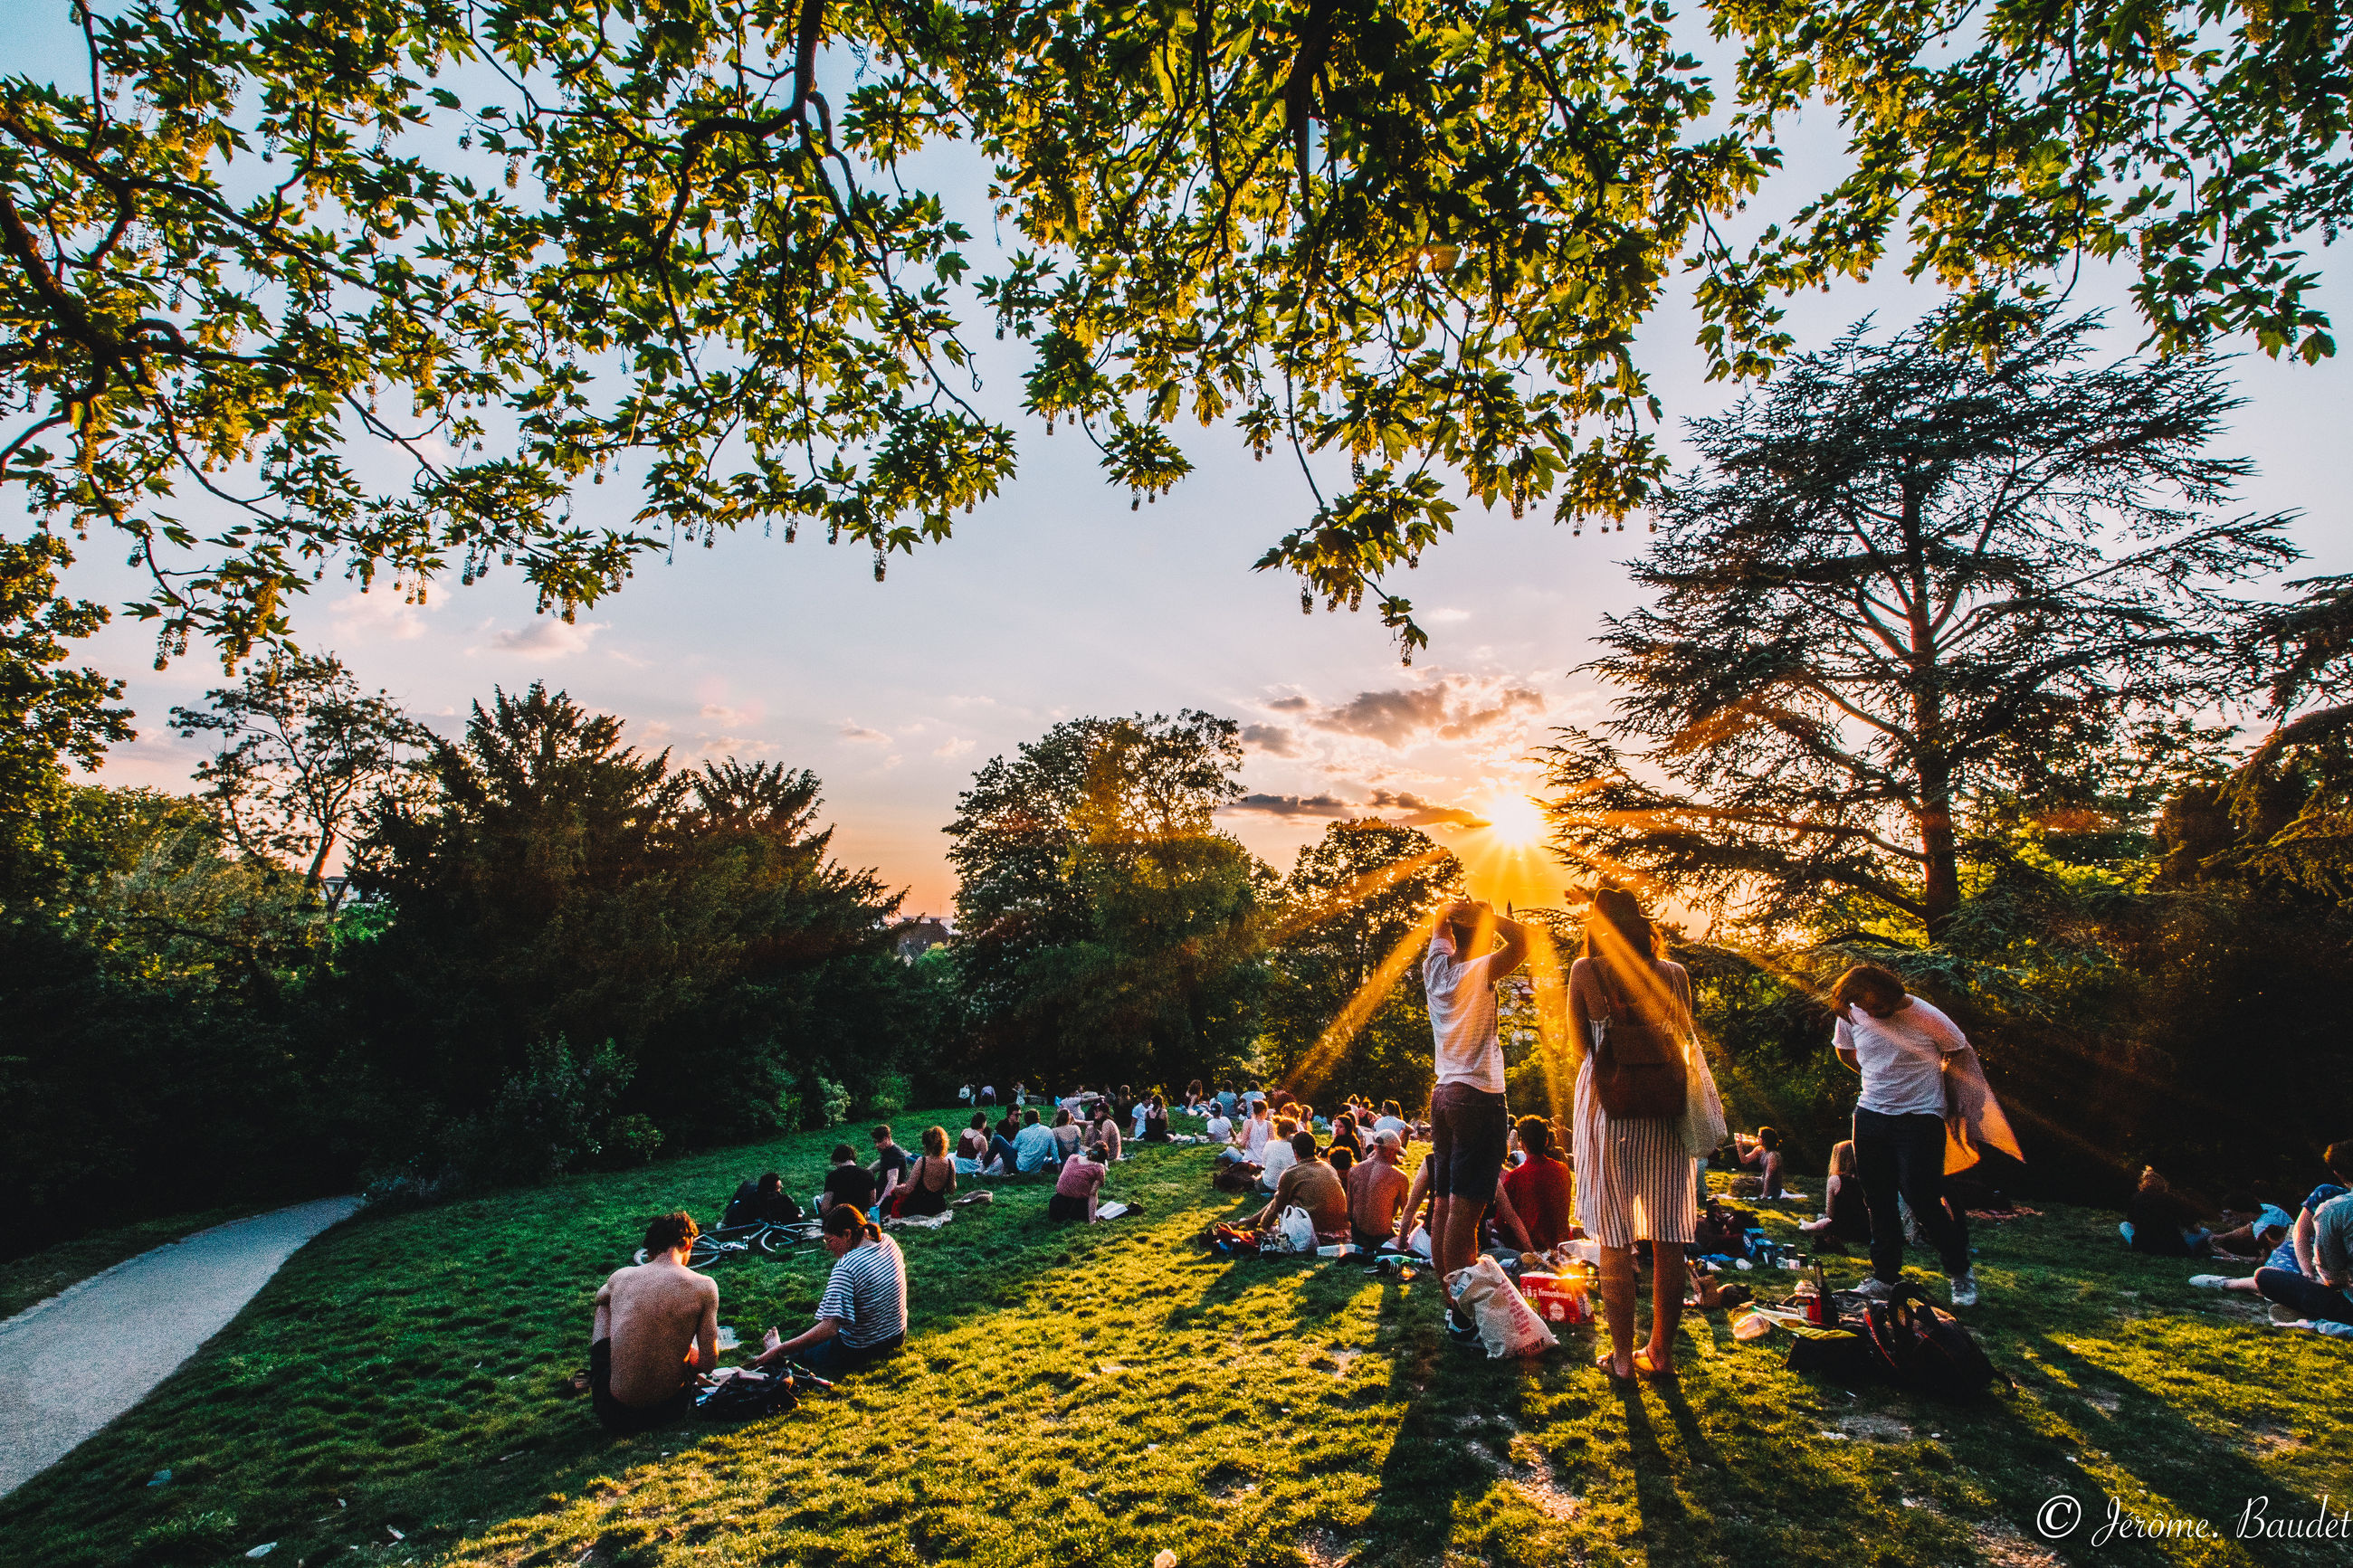 tree, crowd, plant, group of people, large group of people, real people, men, sky, women, nature, lifestyles, adult, leisure activity, grass, land, field, sunset, relaxation, sunlight, outdoors, sun